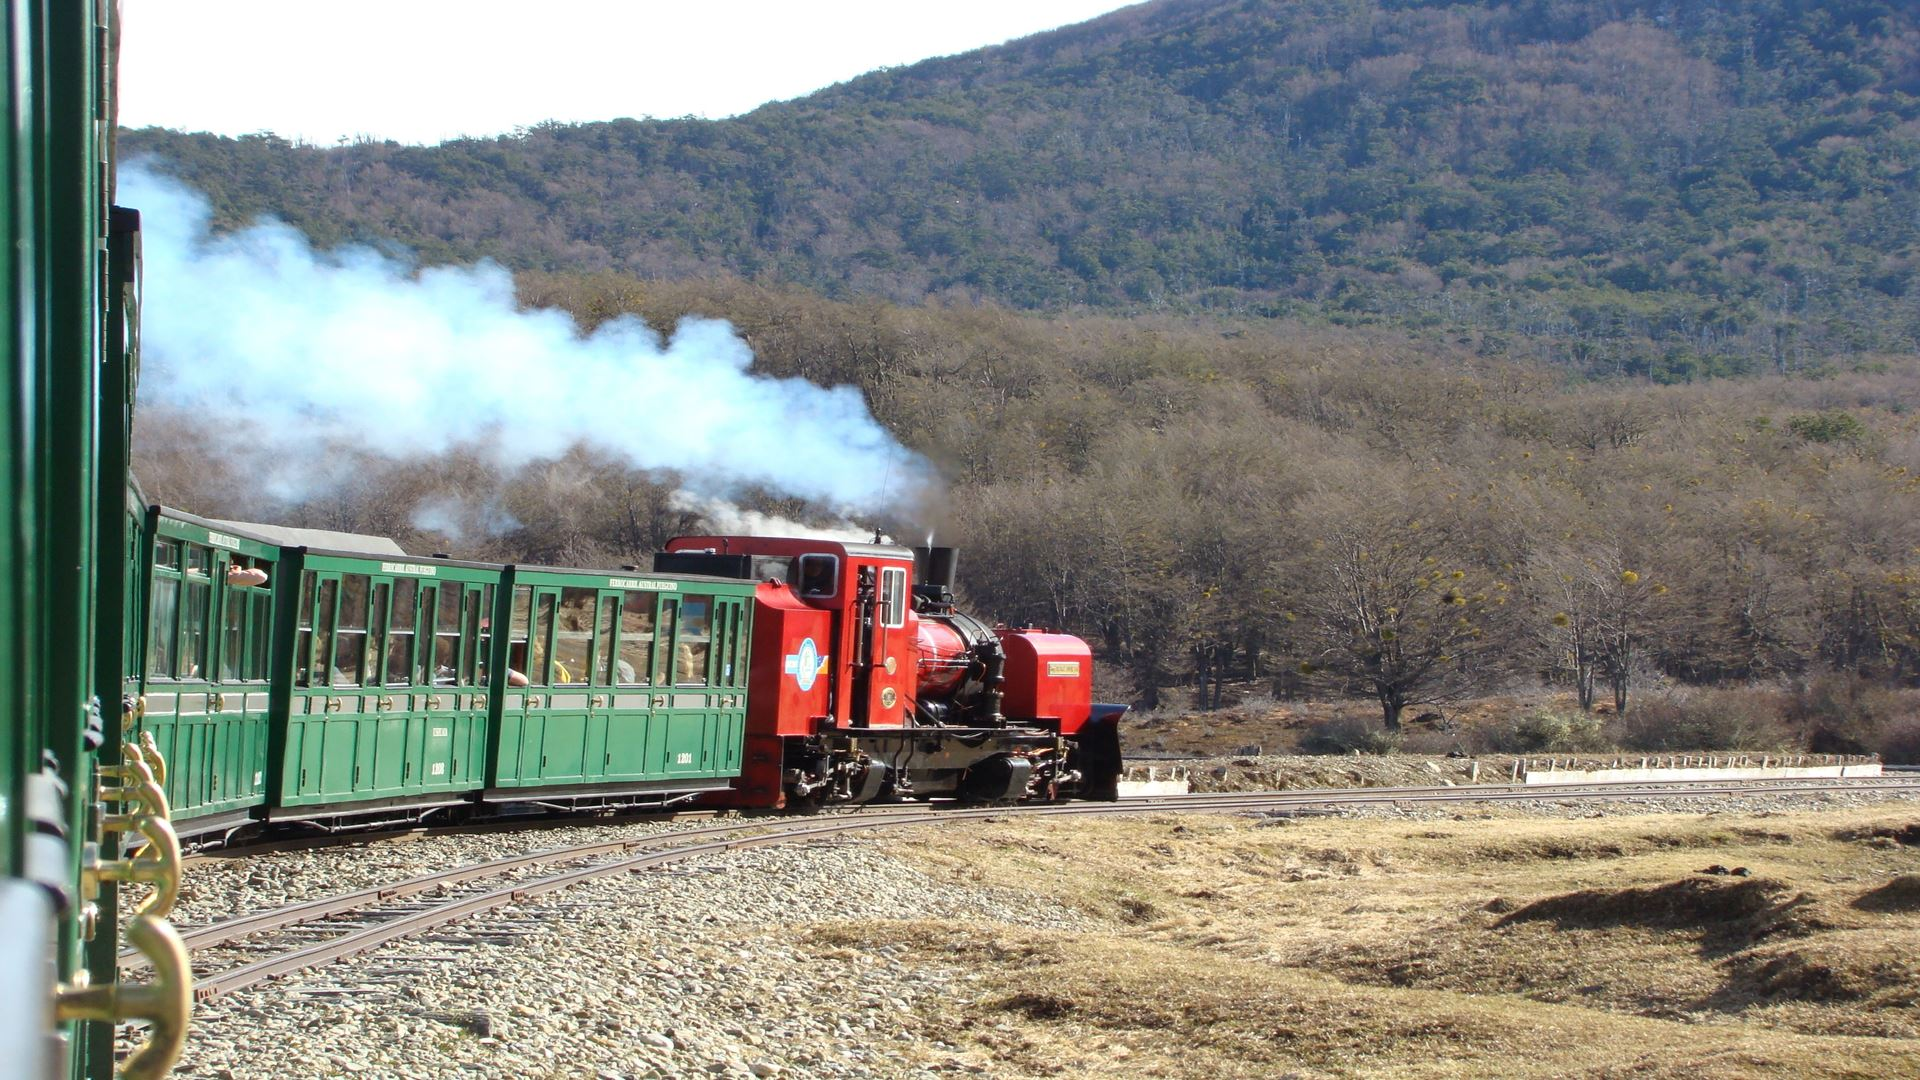 National Park With Train End Of The World